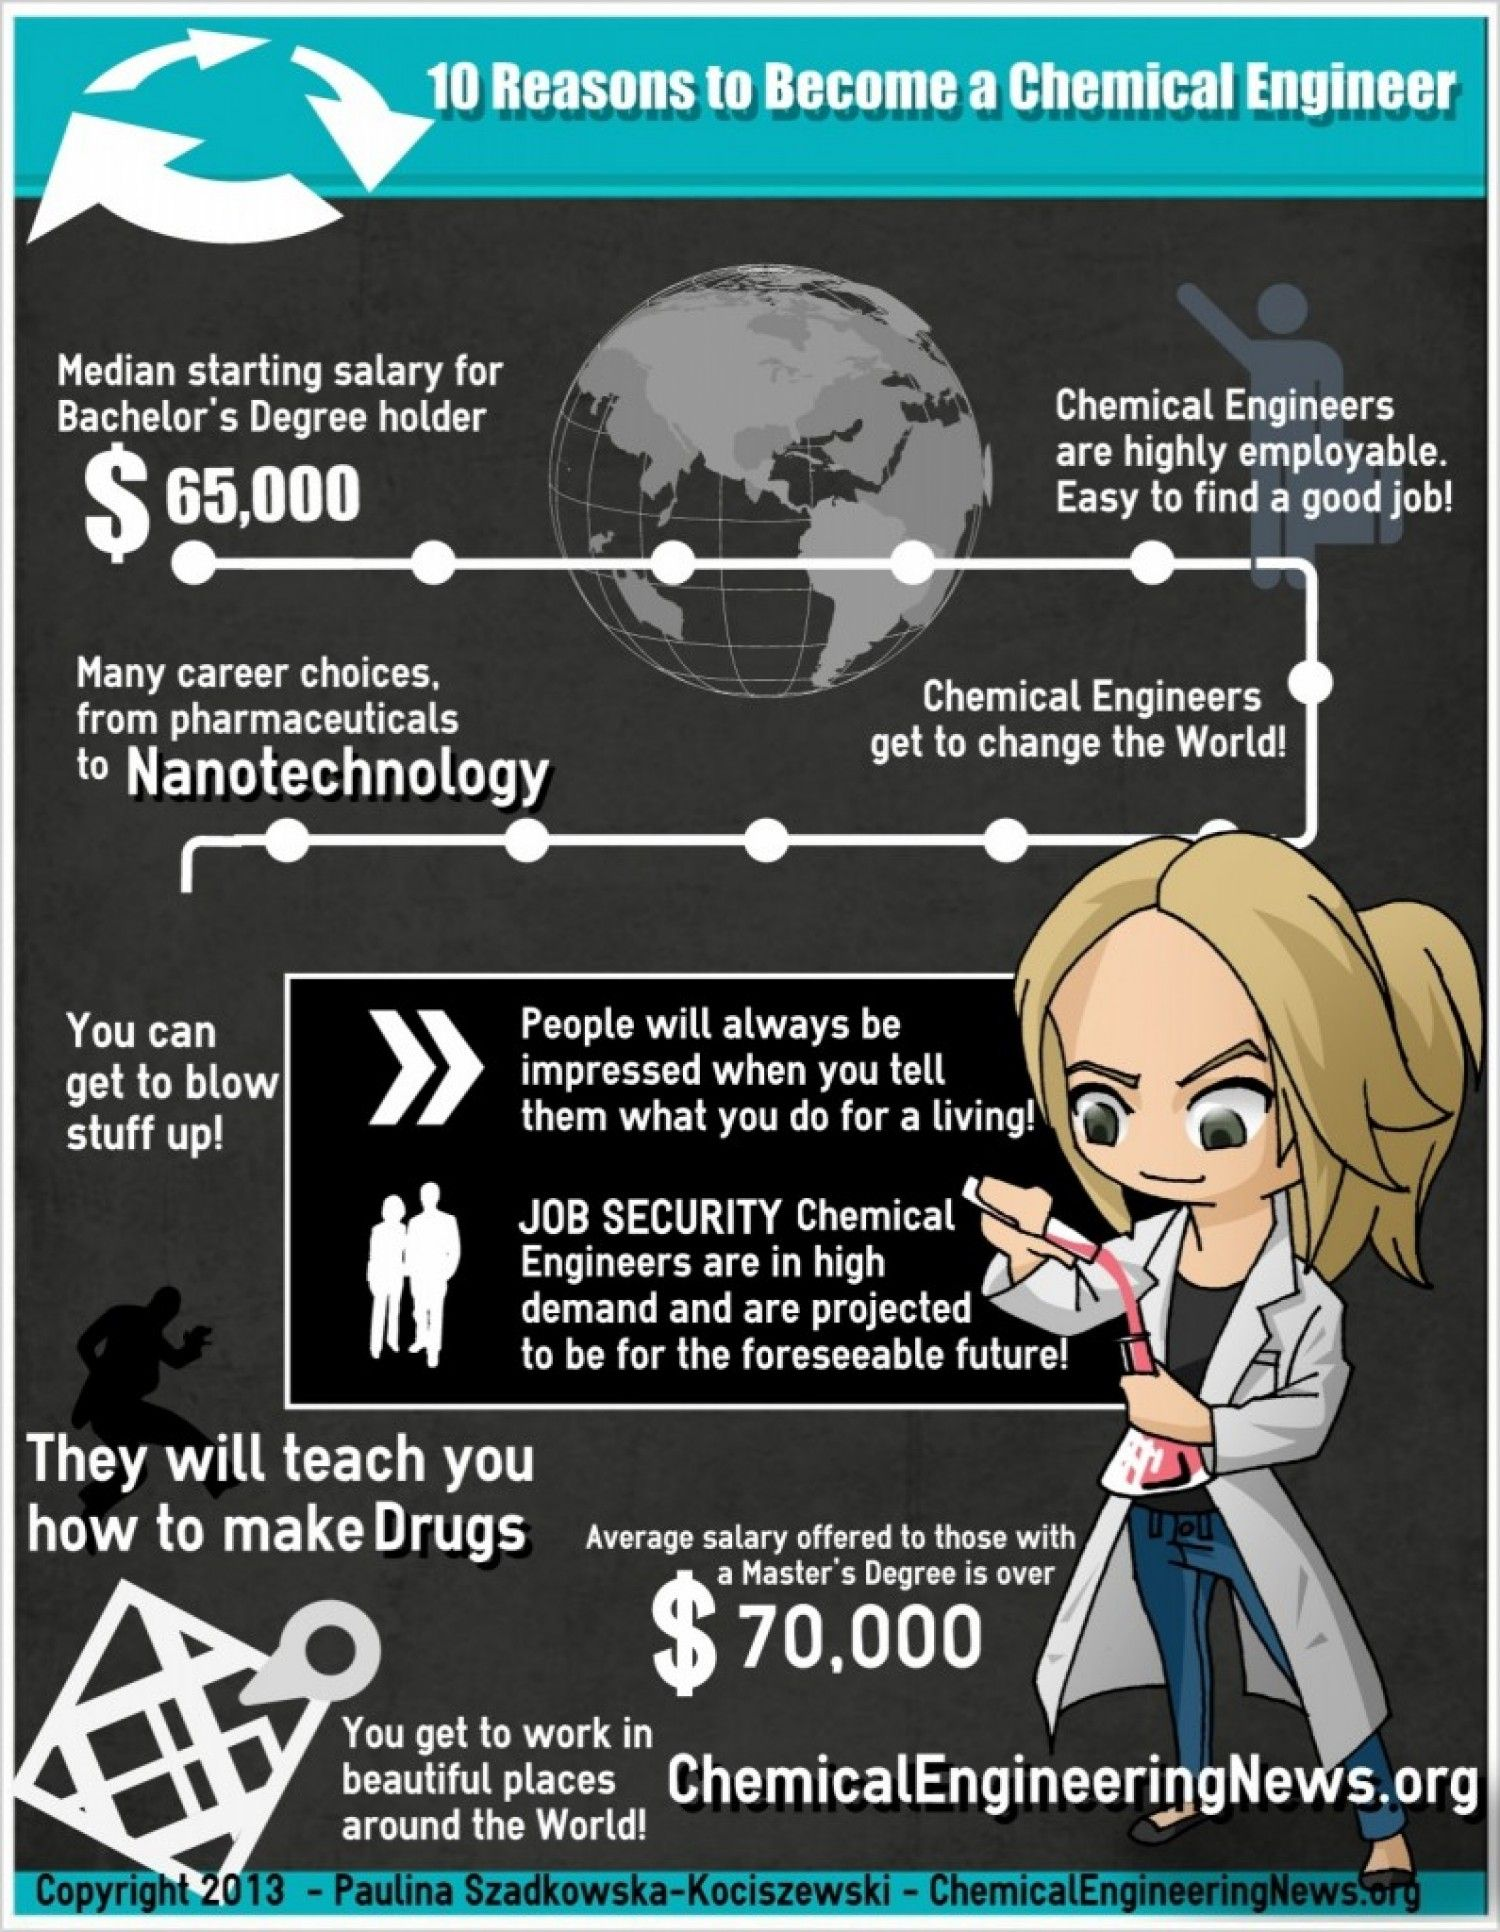 reasons to become a chemical engineer infographic chemical 10 reasons to become a chemical engineer infographic